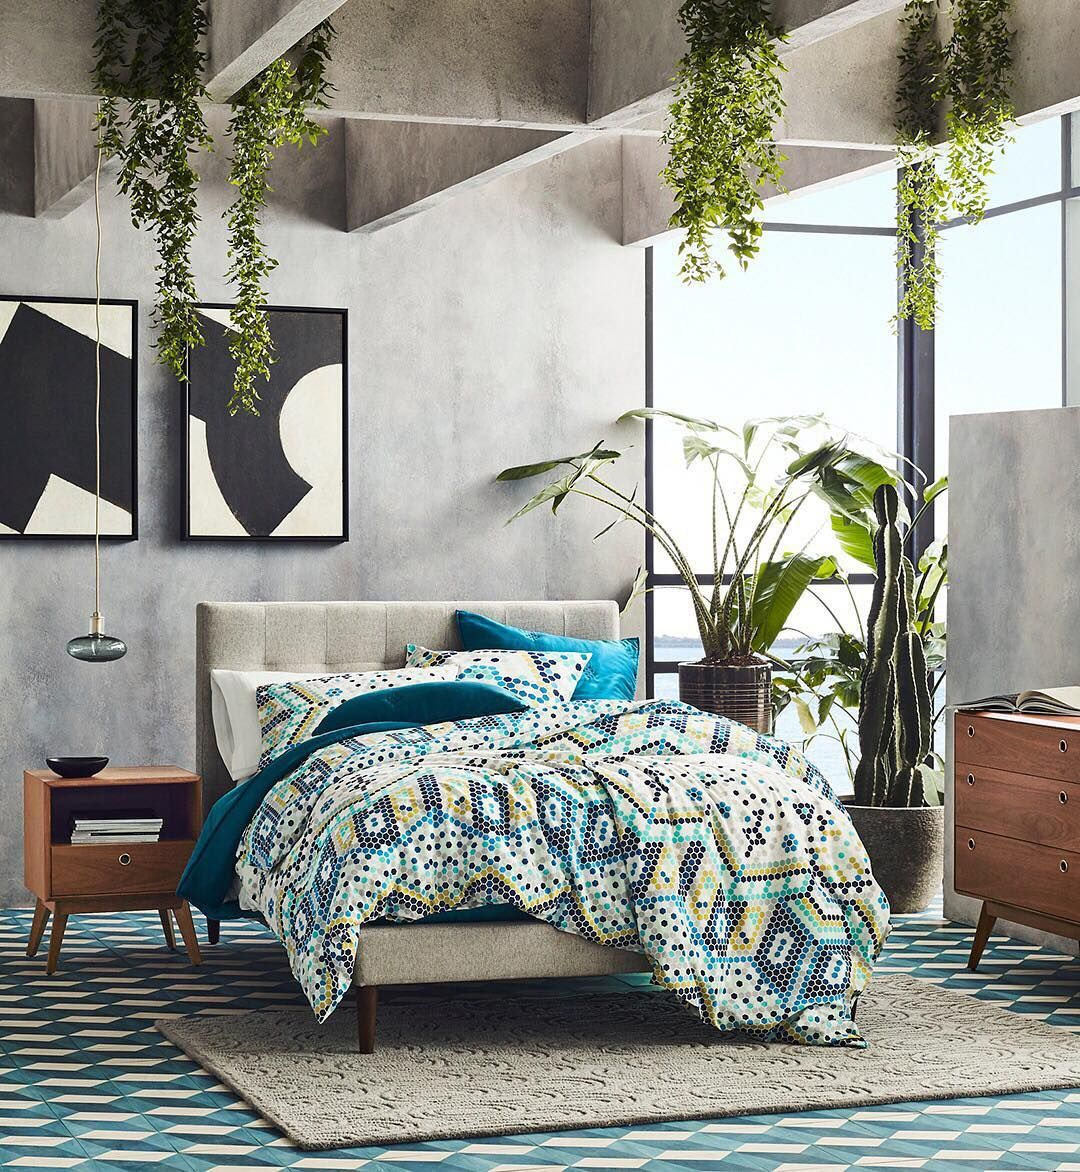 This bedroom combines some of our favorite design trends (mosaic tiles, Brutalist architecture, Mid-Century forms) and we can't get enough! 😍😍😍 Want to snag this style for your own home? Snag everything in this photo by clicking on the link in profile! #mywestem